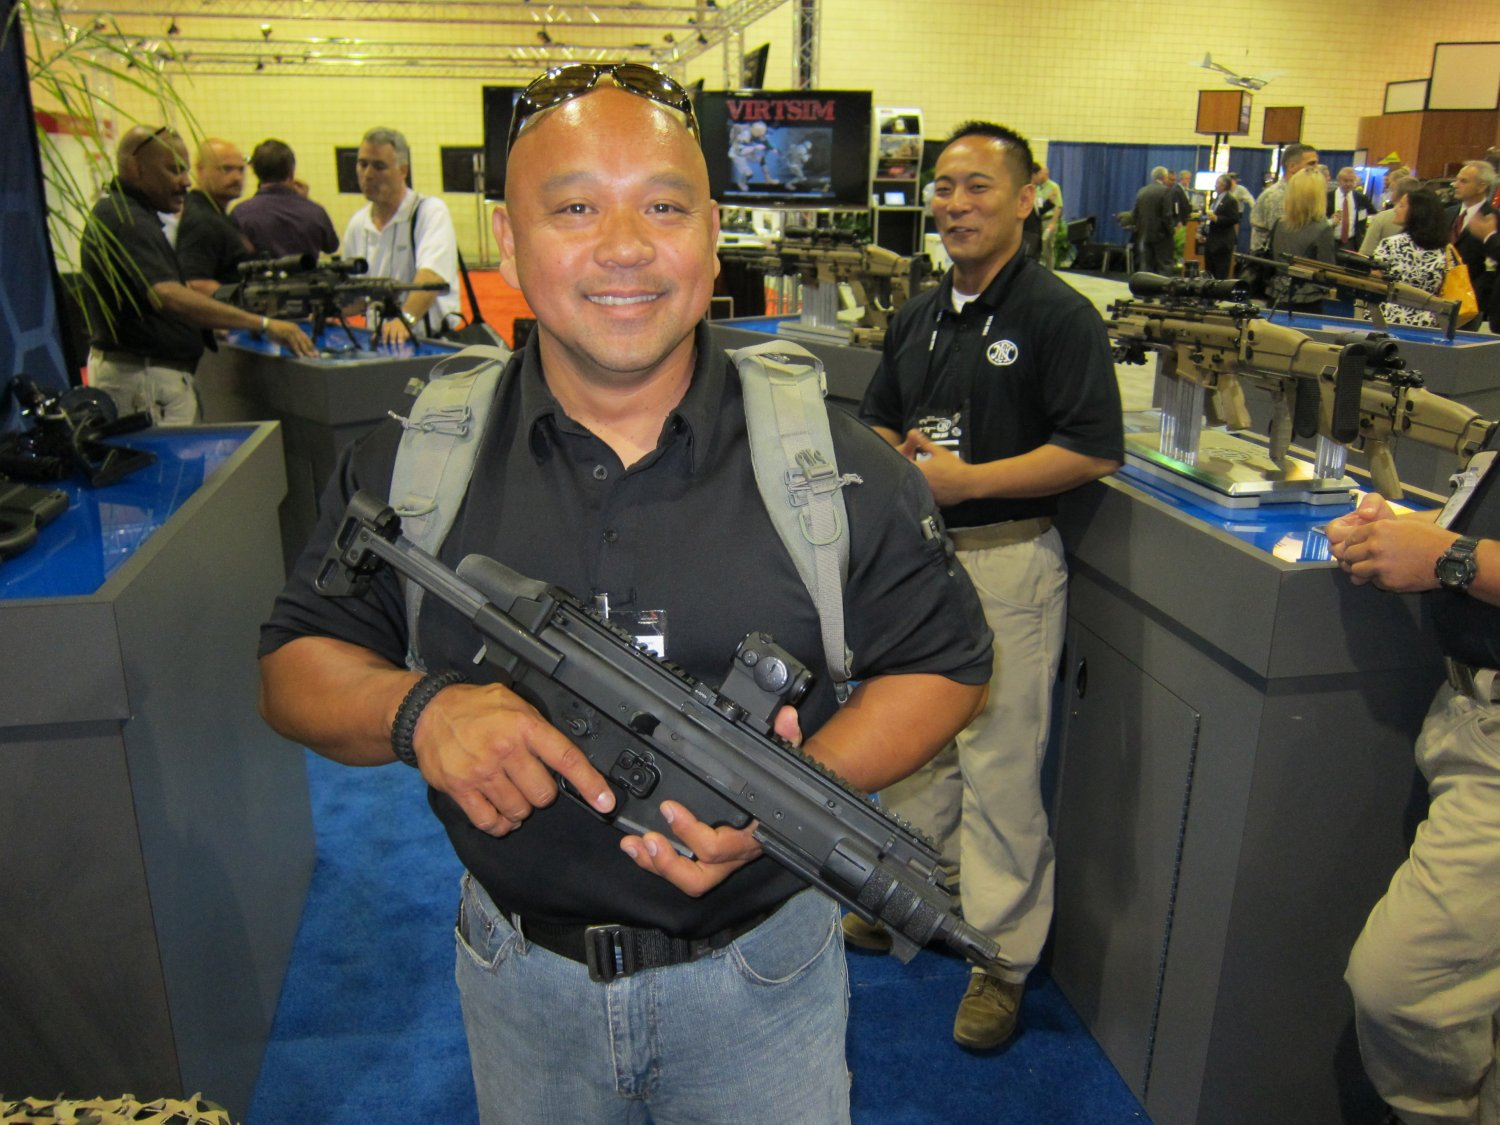 FNH USA FN SCAR PDW Compact Assault SBR 5.56mm NATO Felipe Jose SOFIC 2011 DefenseReview DR 2 <!  :en  >FN SCAR PDW (Personal Defense Weapon) Compact Select Fire 5.56mm NATO SBR for Special Operations Forces (SOF) Applications: DR Handles the Weapon at SOFIC 2011 and NDIA Small Arms Symposium 2011 (Photos!)<!  :  >